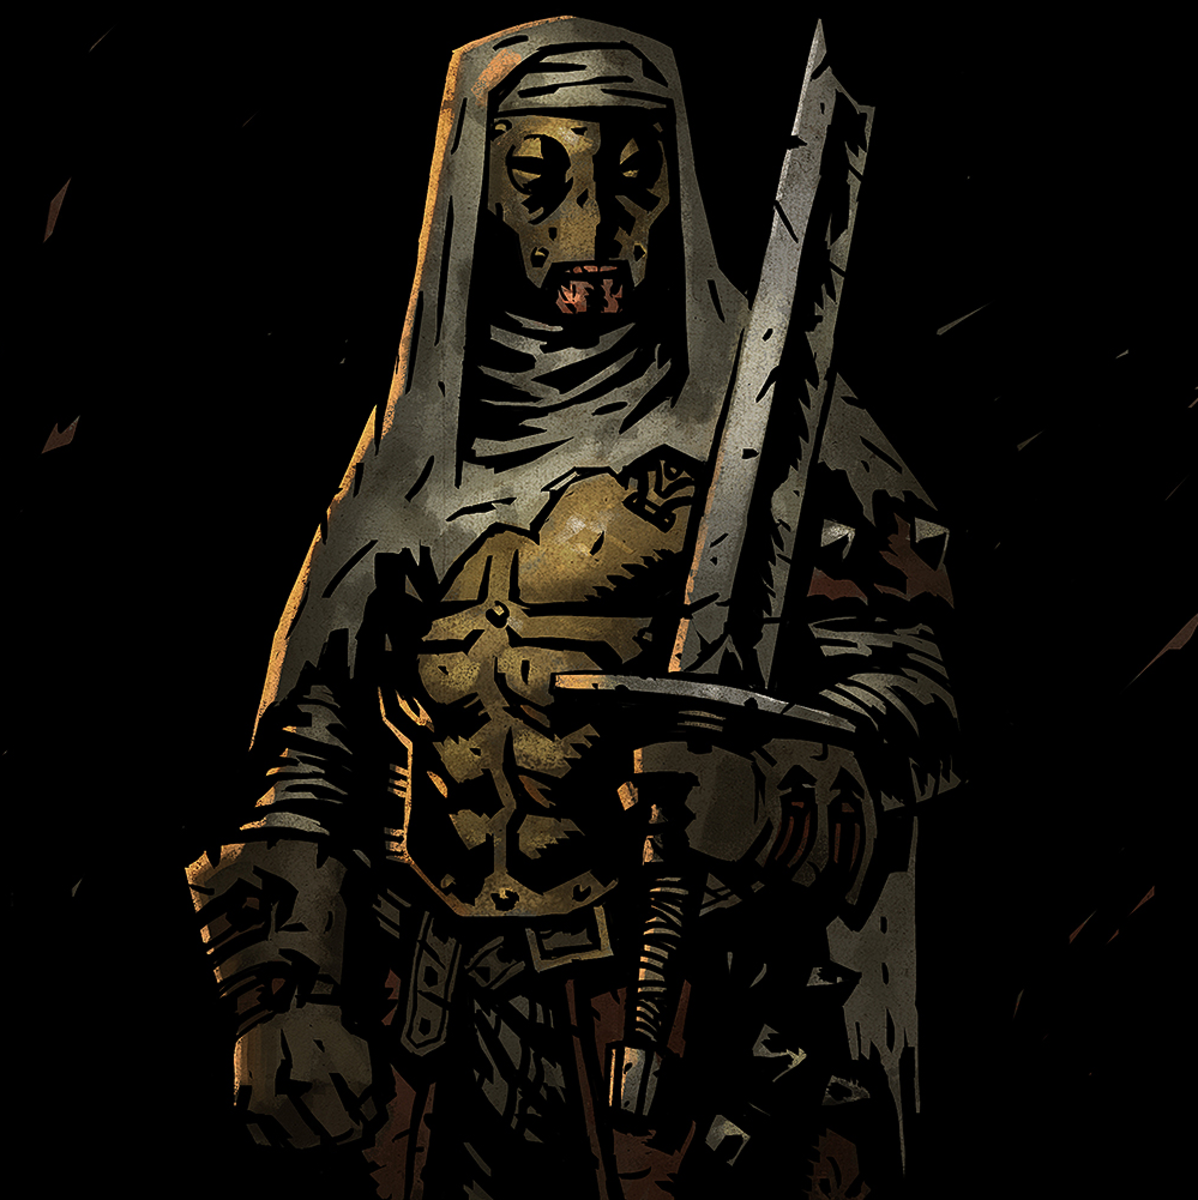 The Leper in Darkest Dungeon